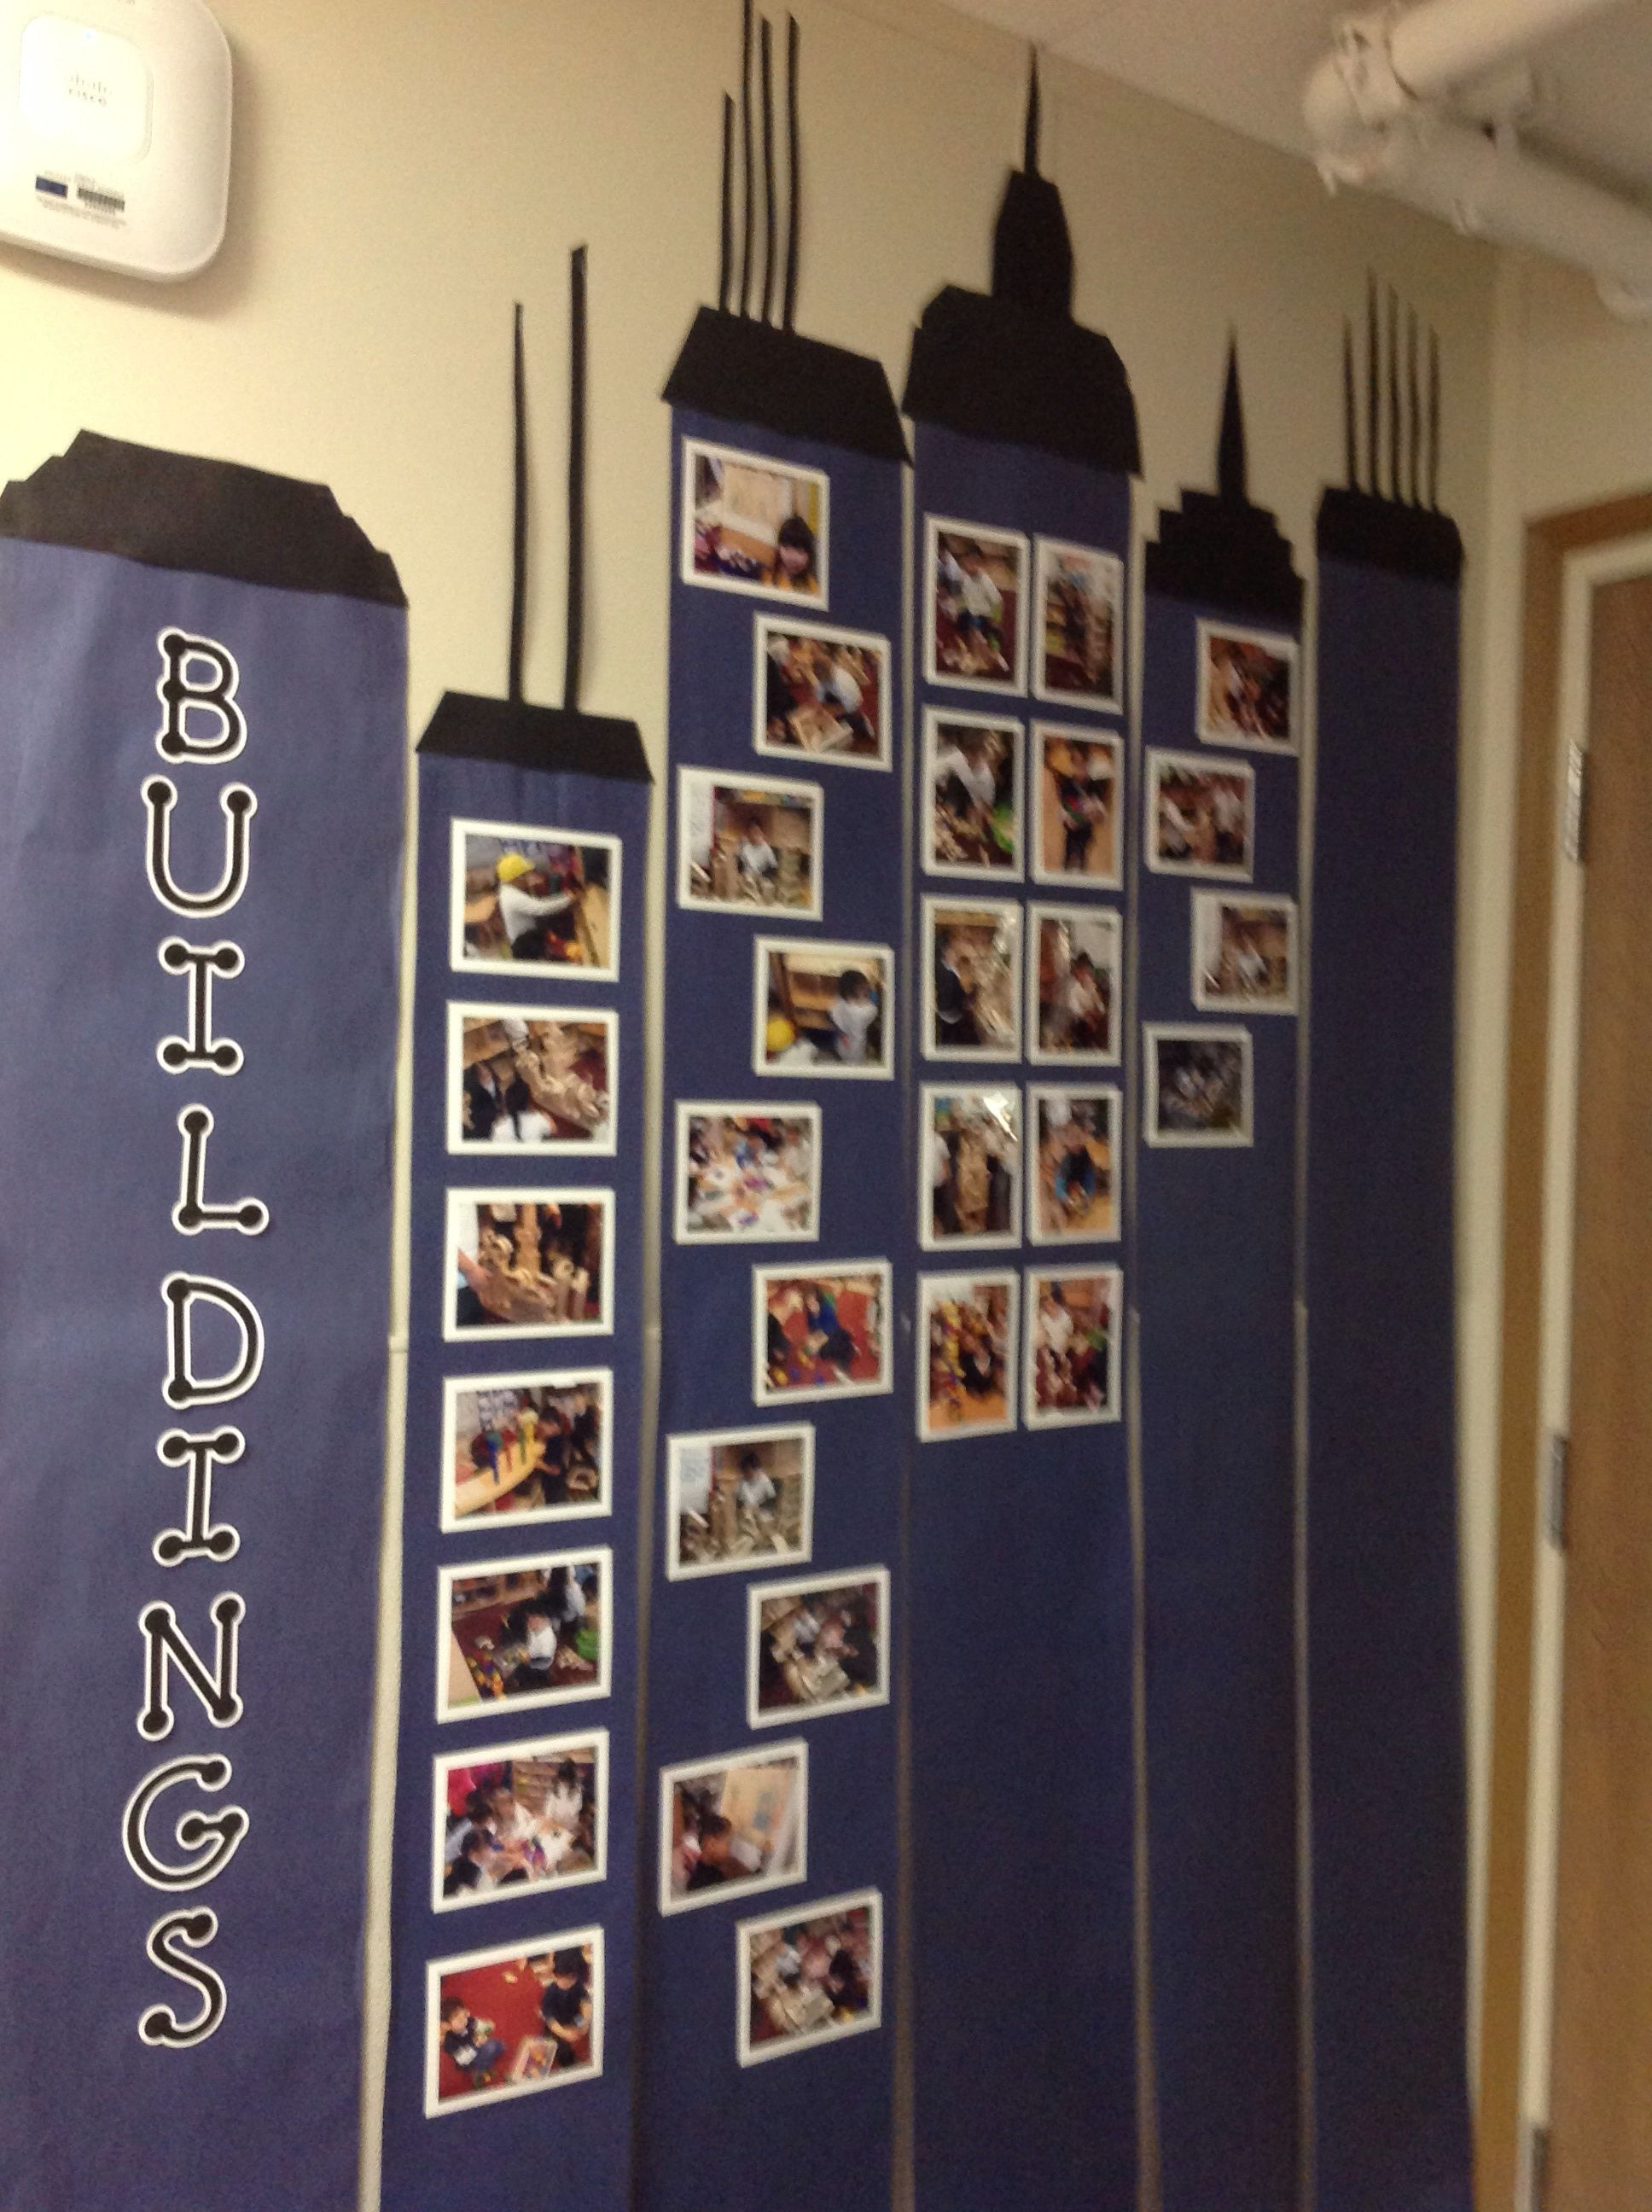 Our Building Theme Lent Itself To Showcasing Our Students